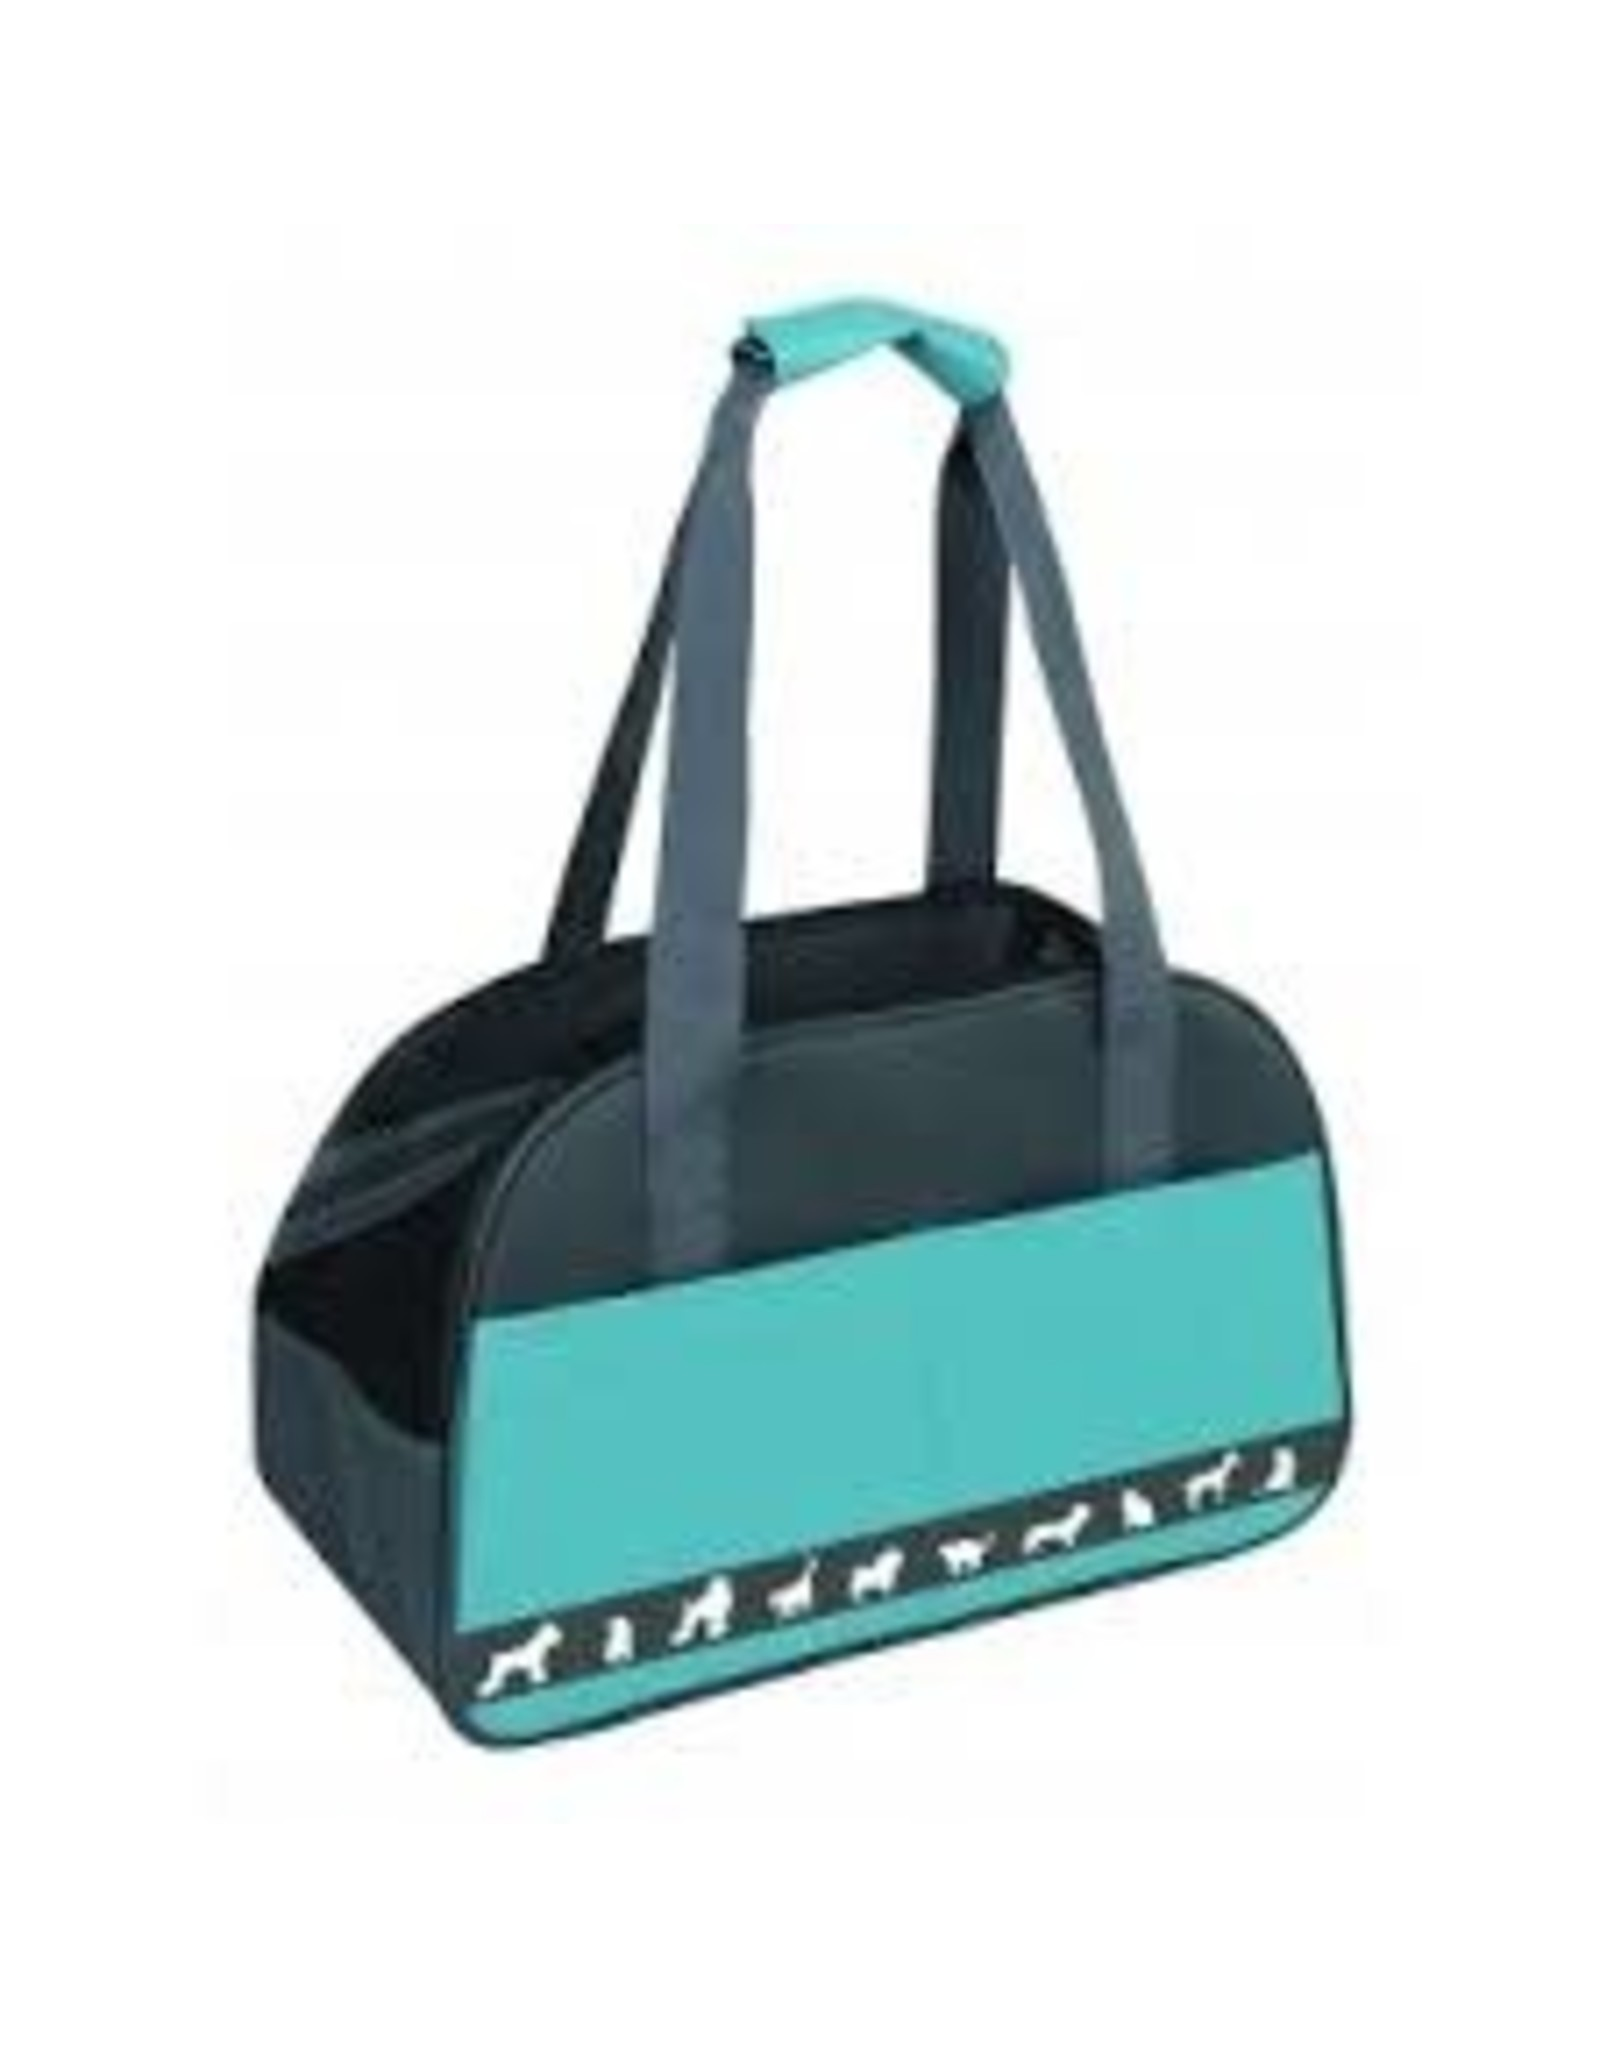 TUFF CRATE Front Load Carrier Blue